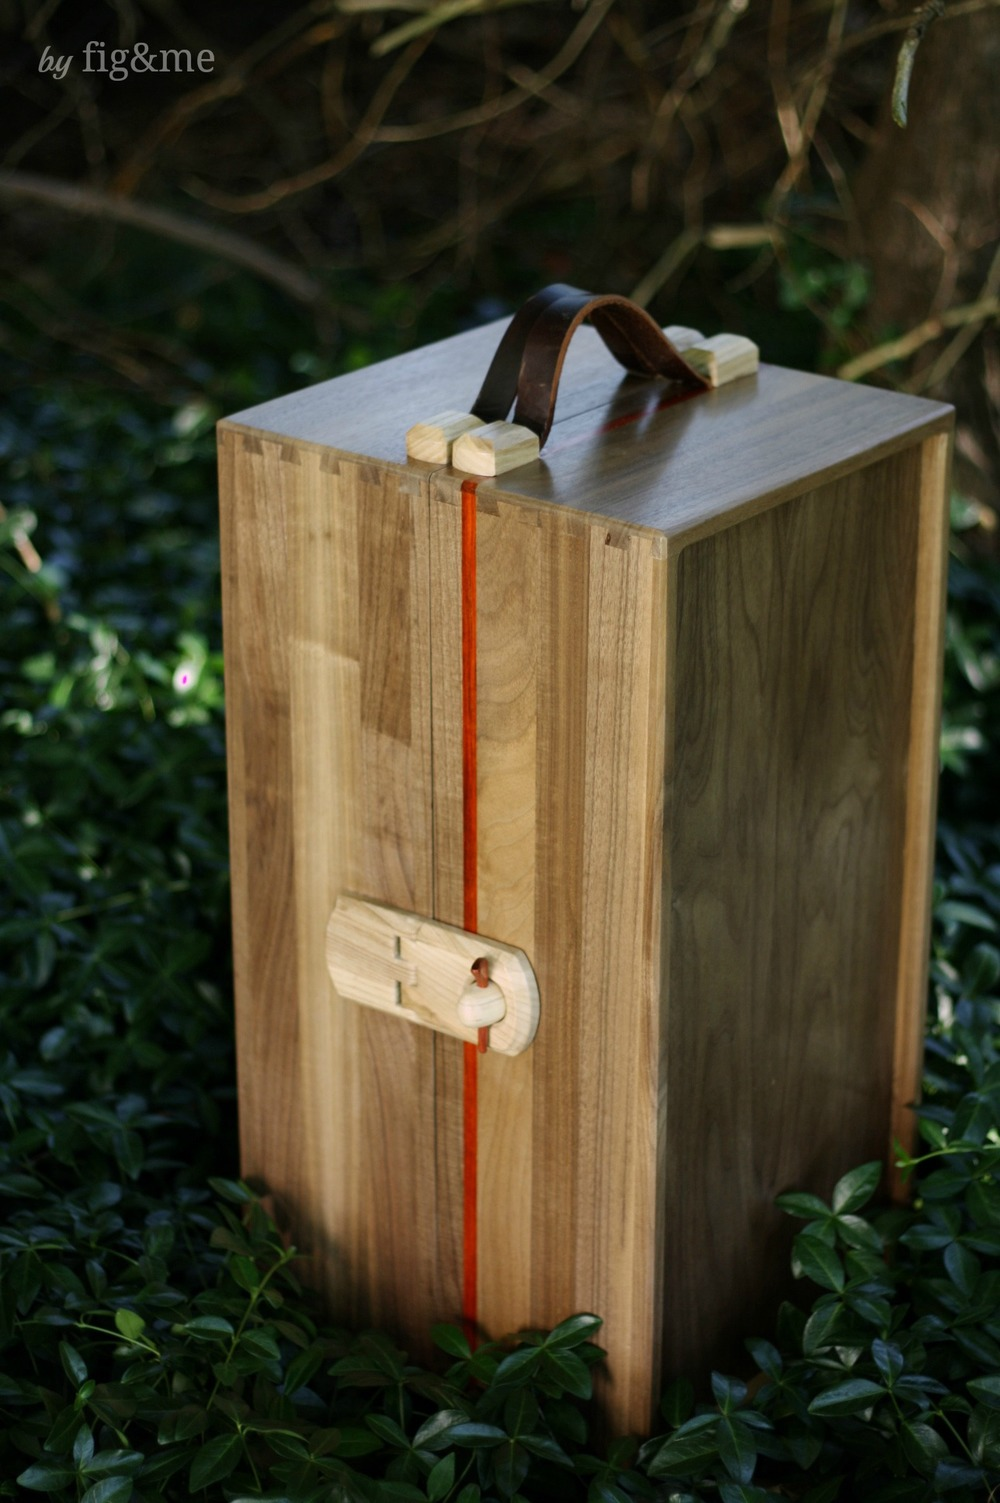 Wooden steam trunk, with walnut and leather straps. By Fig and me.